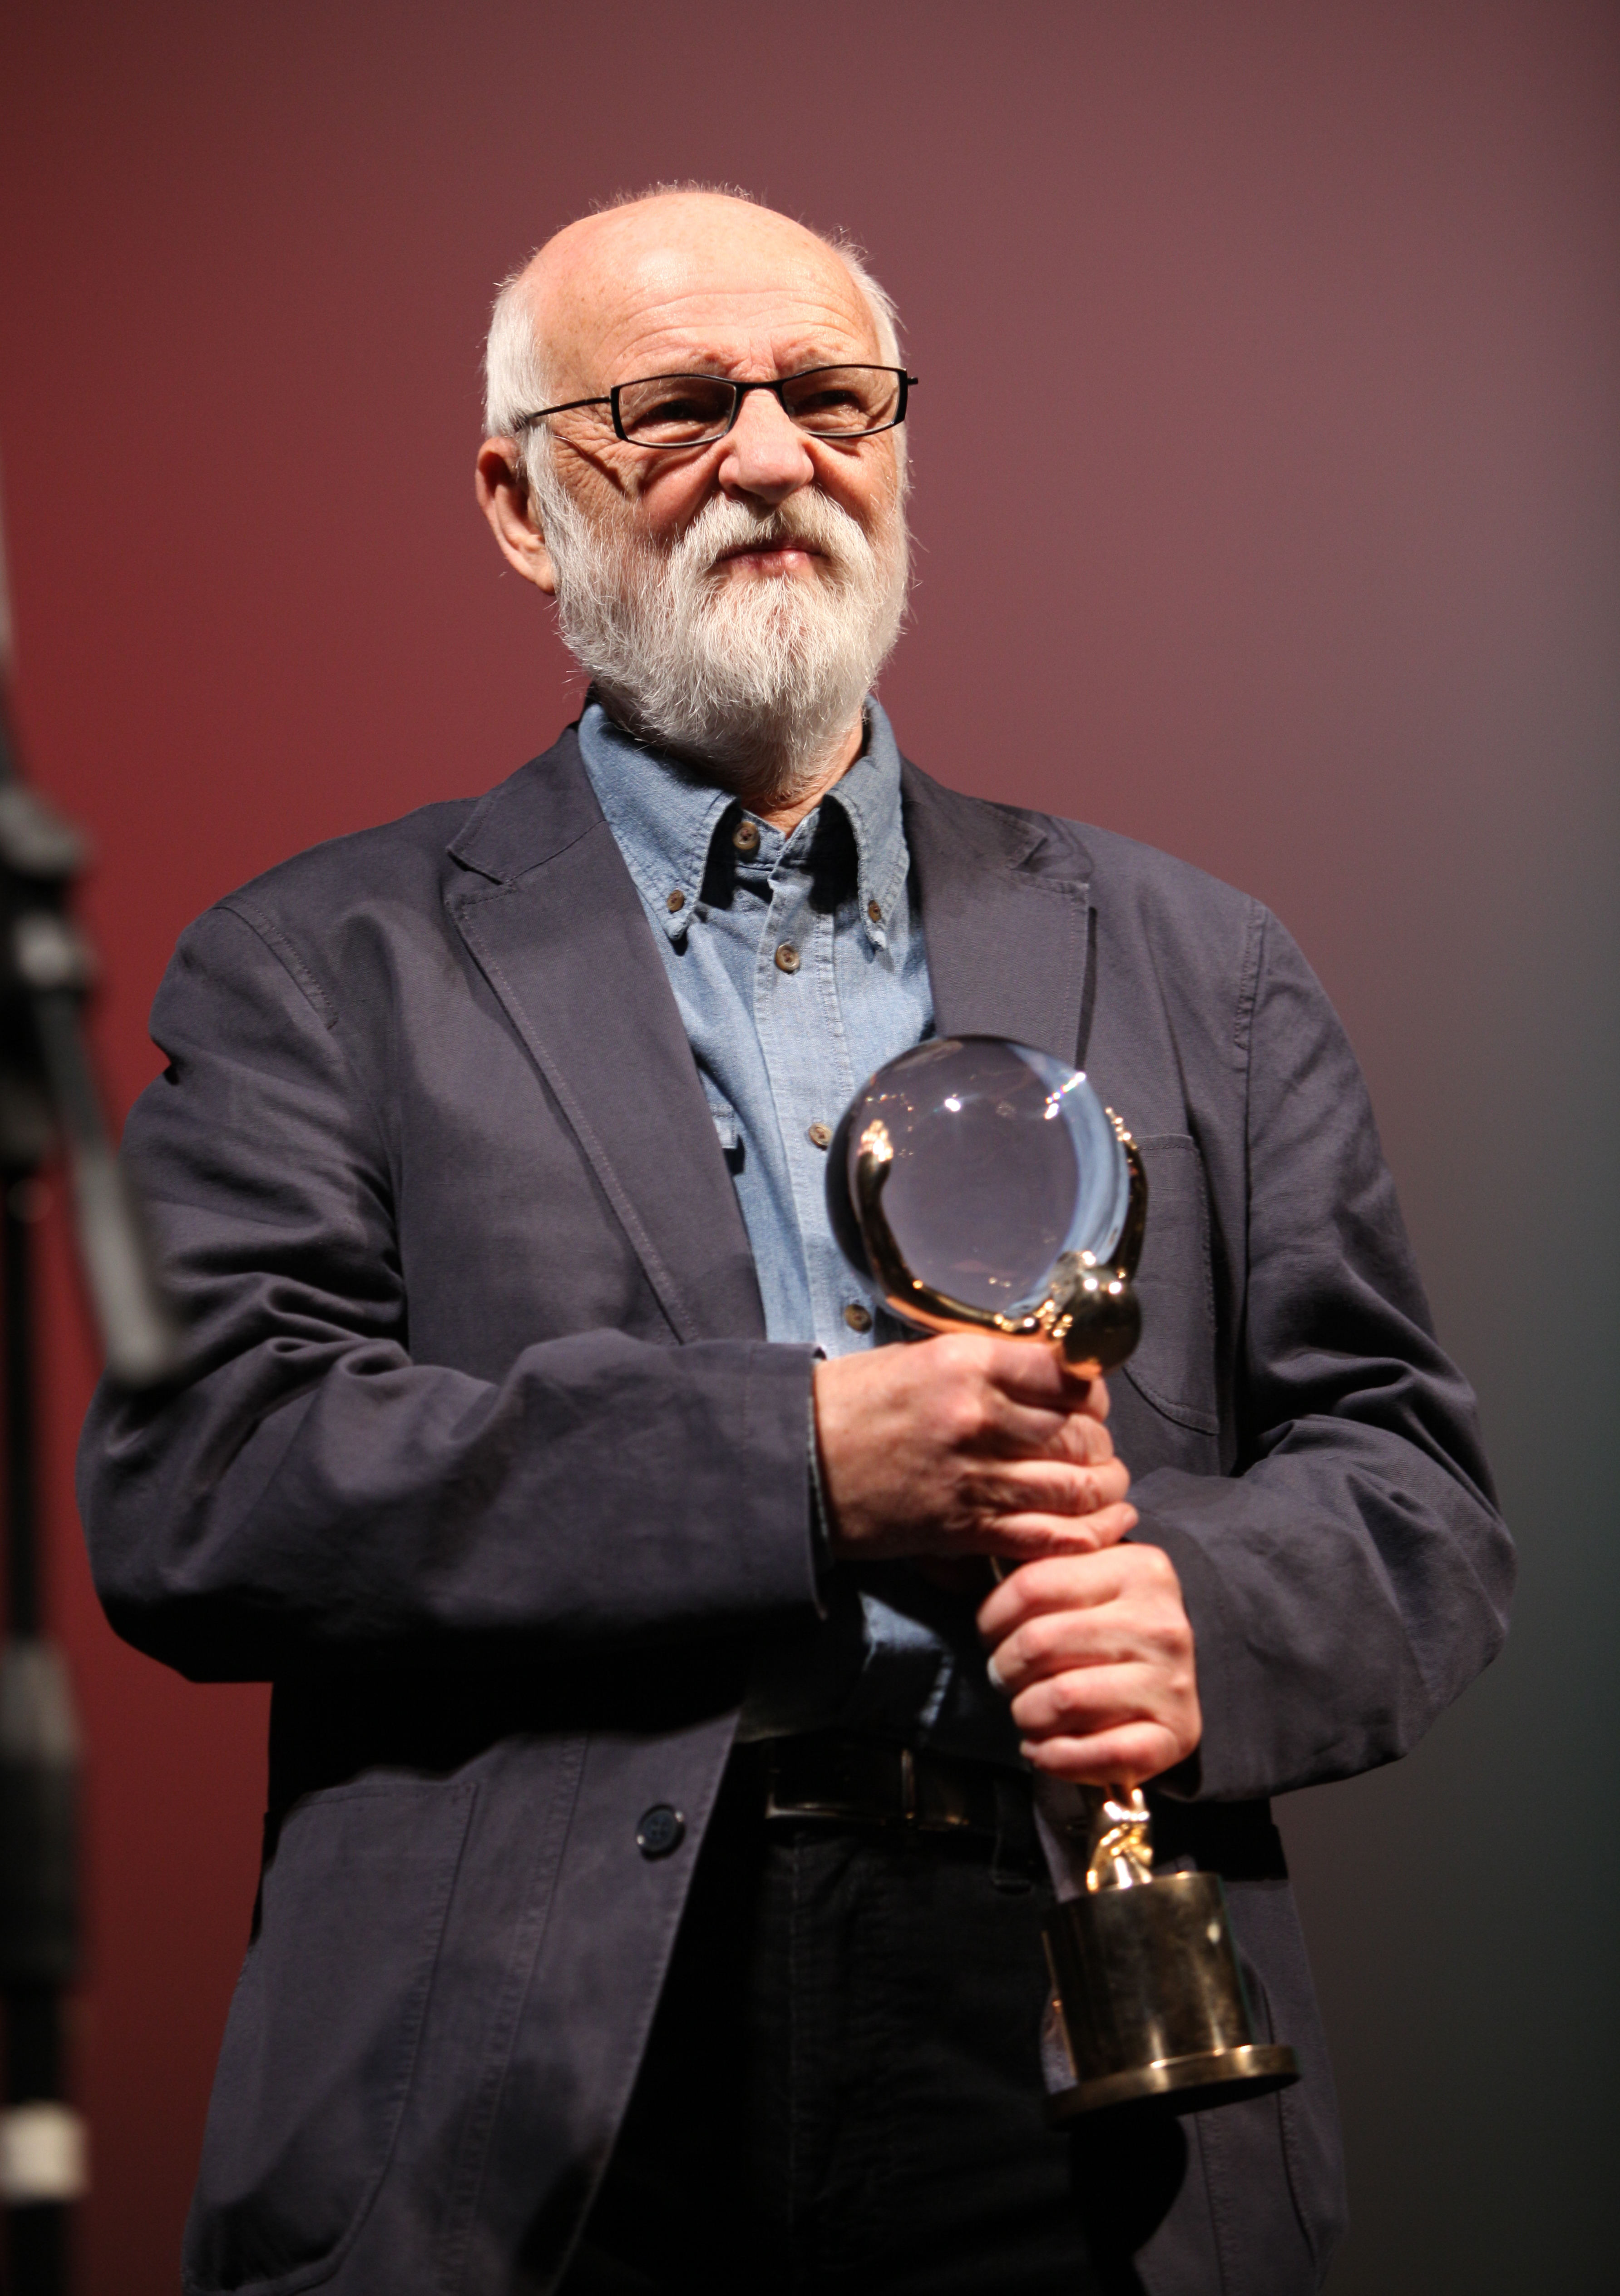 Image of Jan Švankmajer from Wikidata